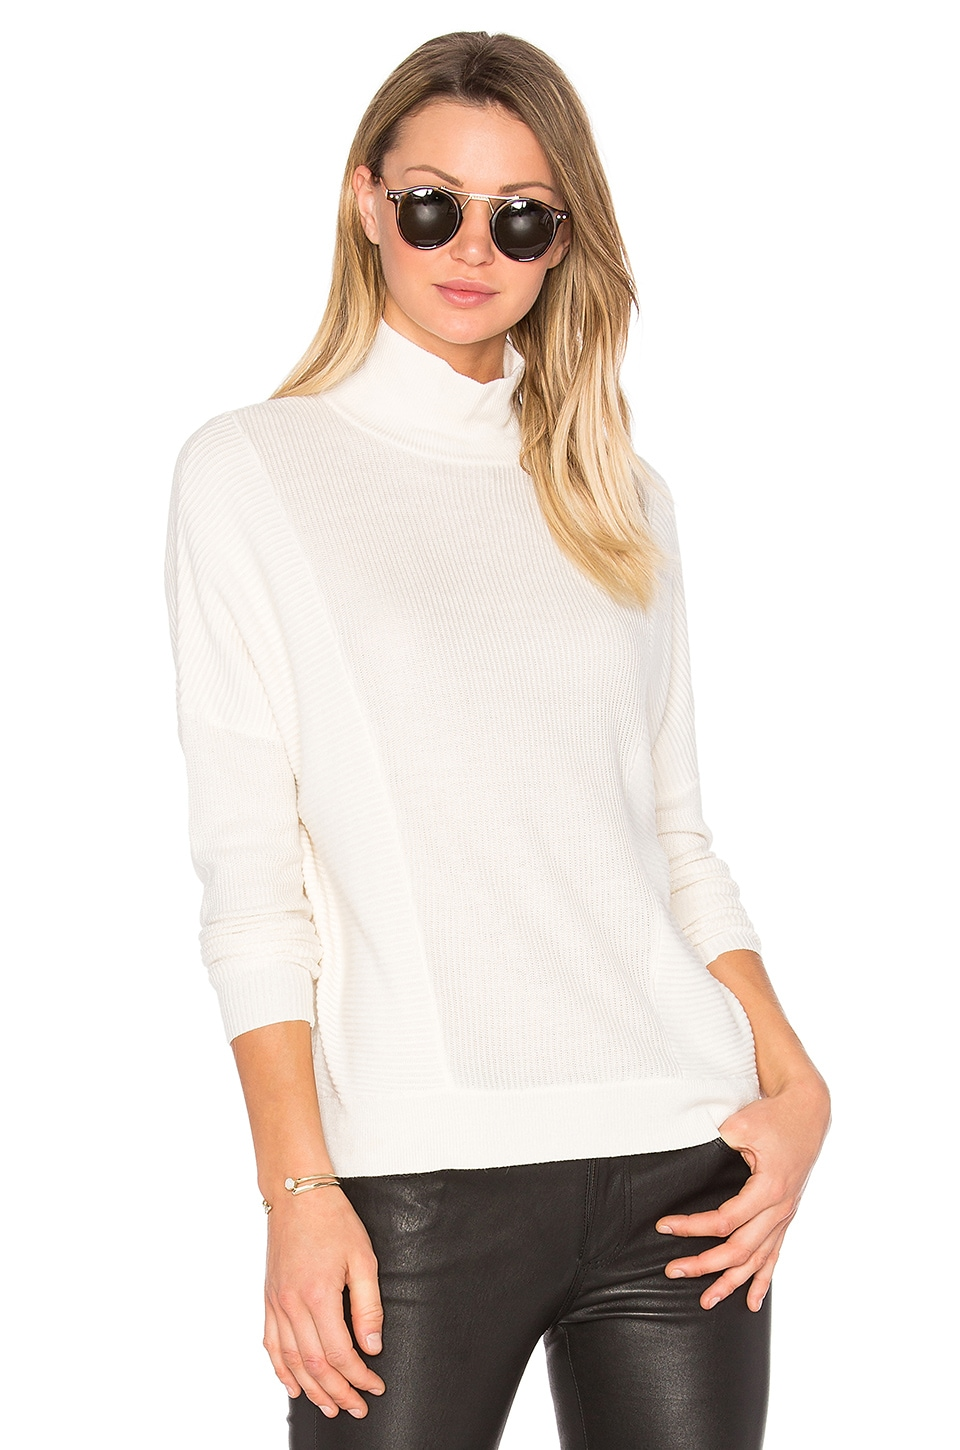 Chester Sweater by Feel the Piece